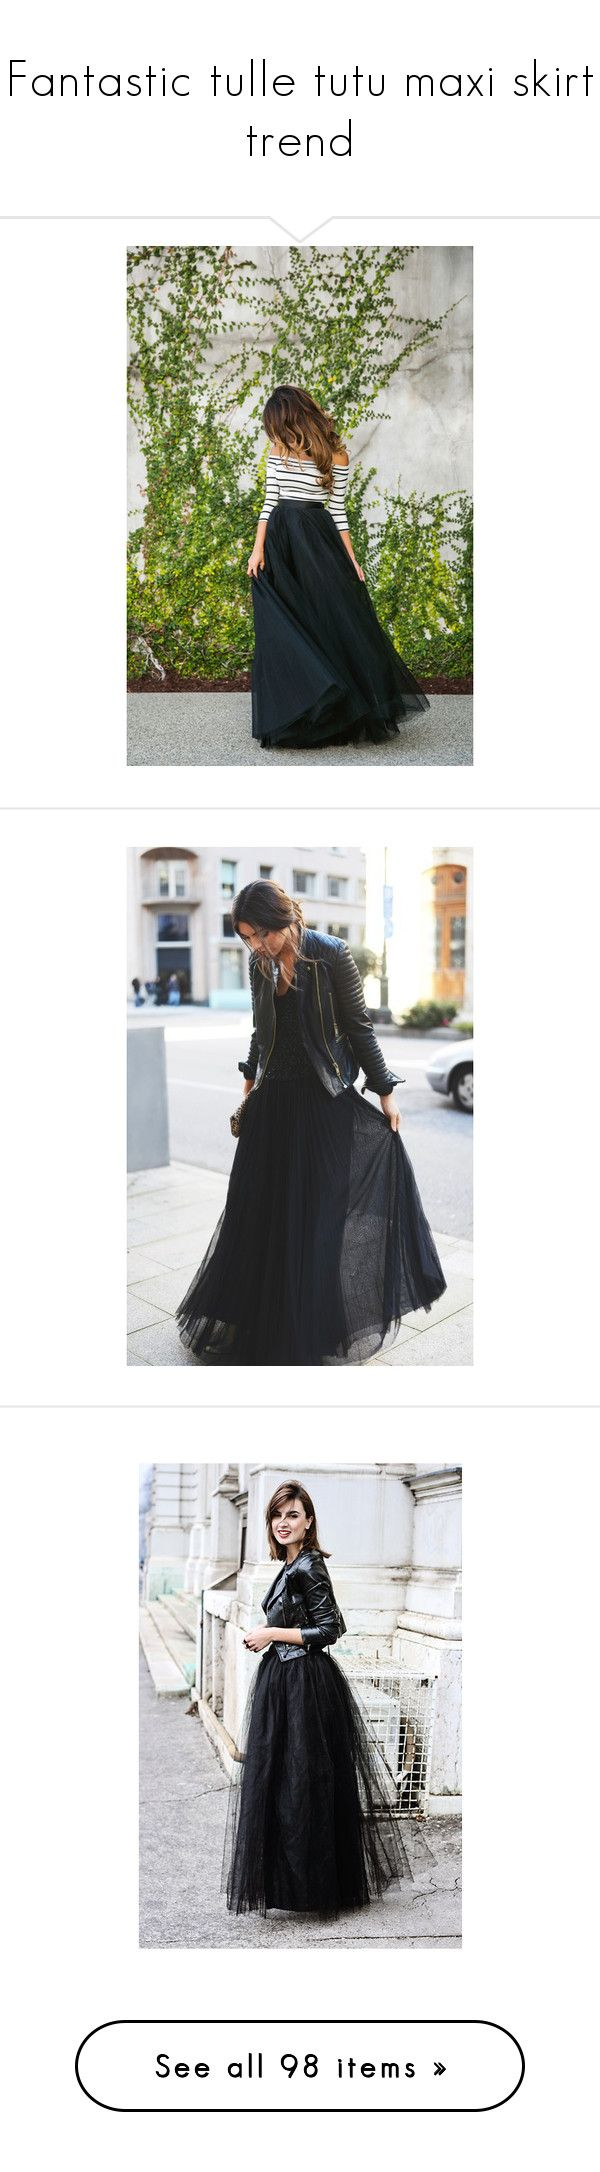 """""""Fantastic tulle tutu maxi skirt trend"""" by noseforfreedom ❤ liked on Polyvore featuring TrickyTrend, tulletutumaxiskirt, dresses, black, mesh dress, maxi length dresses, asos dresses, mesh maxi dress, asos and maxi dresses"""